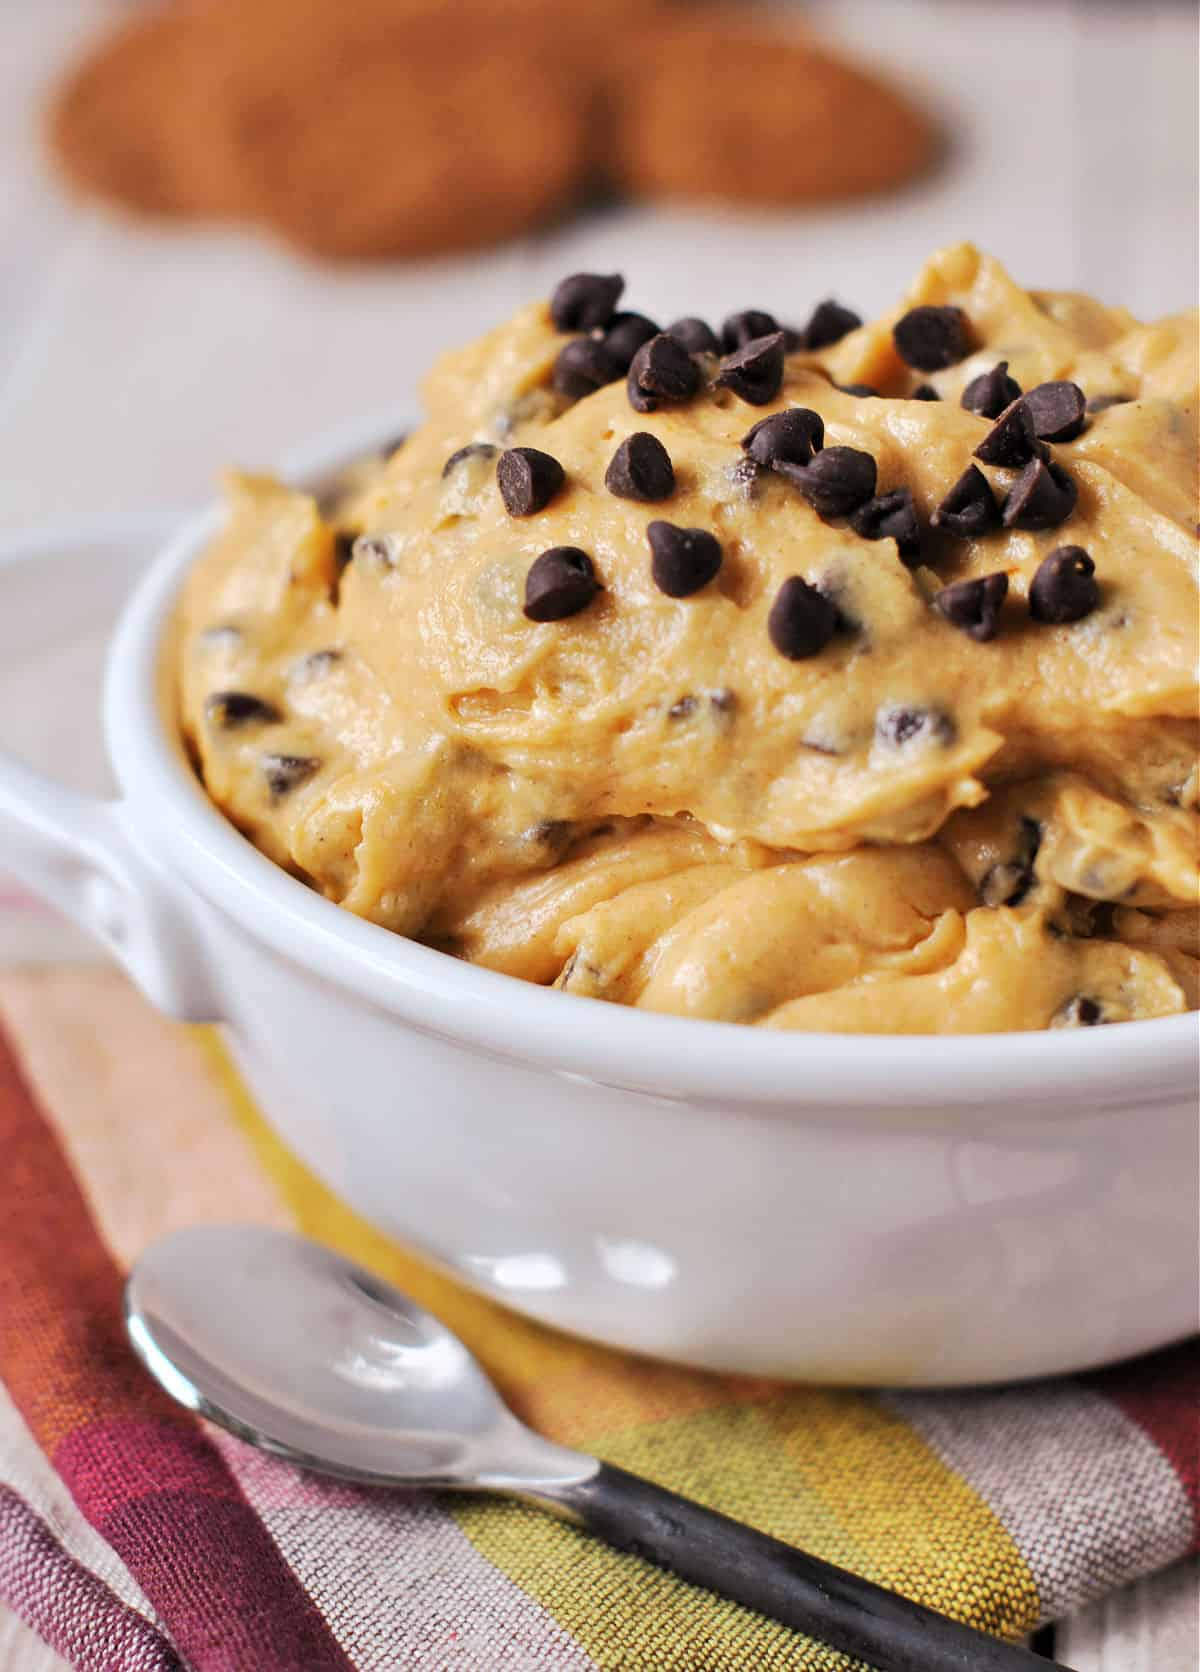 Pumpkin dip with chocolate chips in a white bowl.